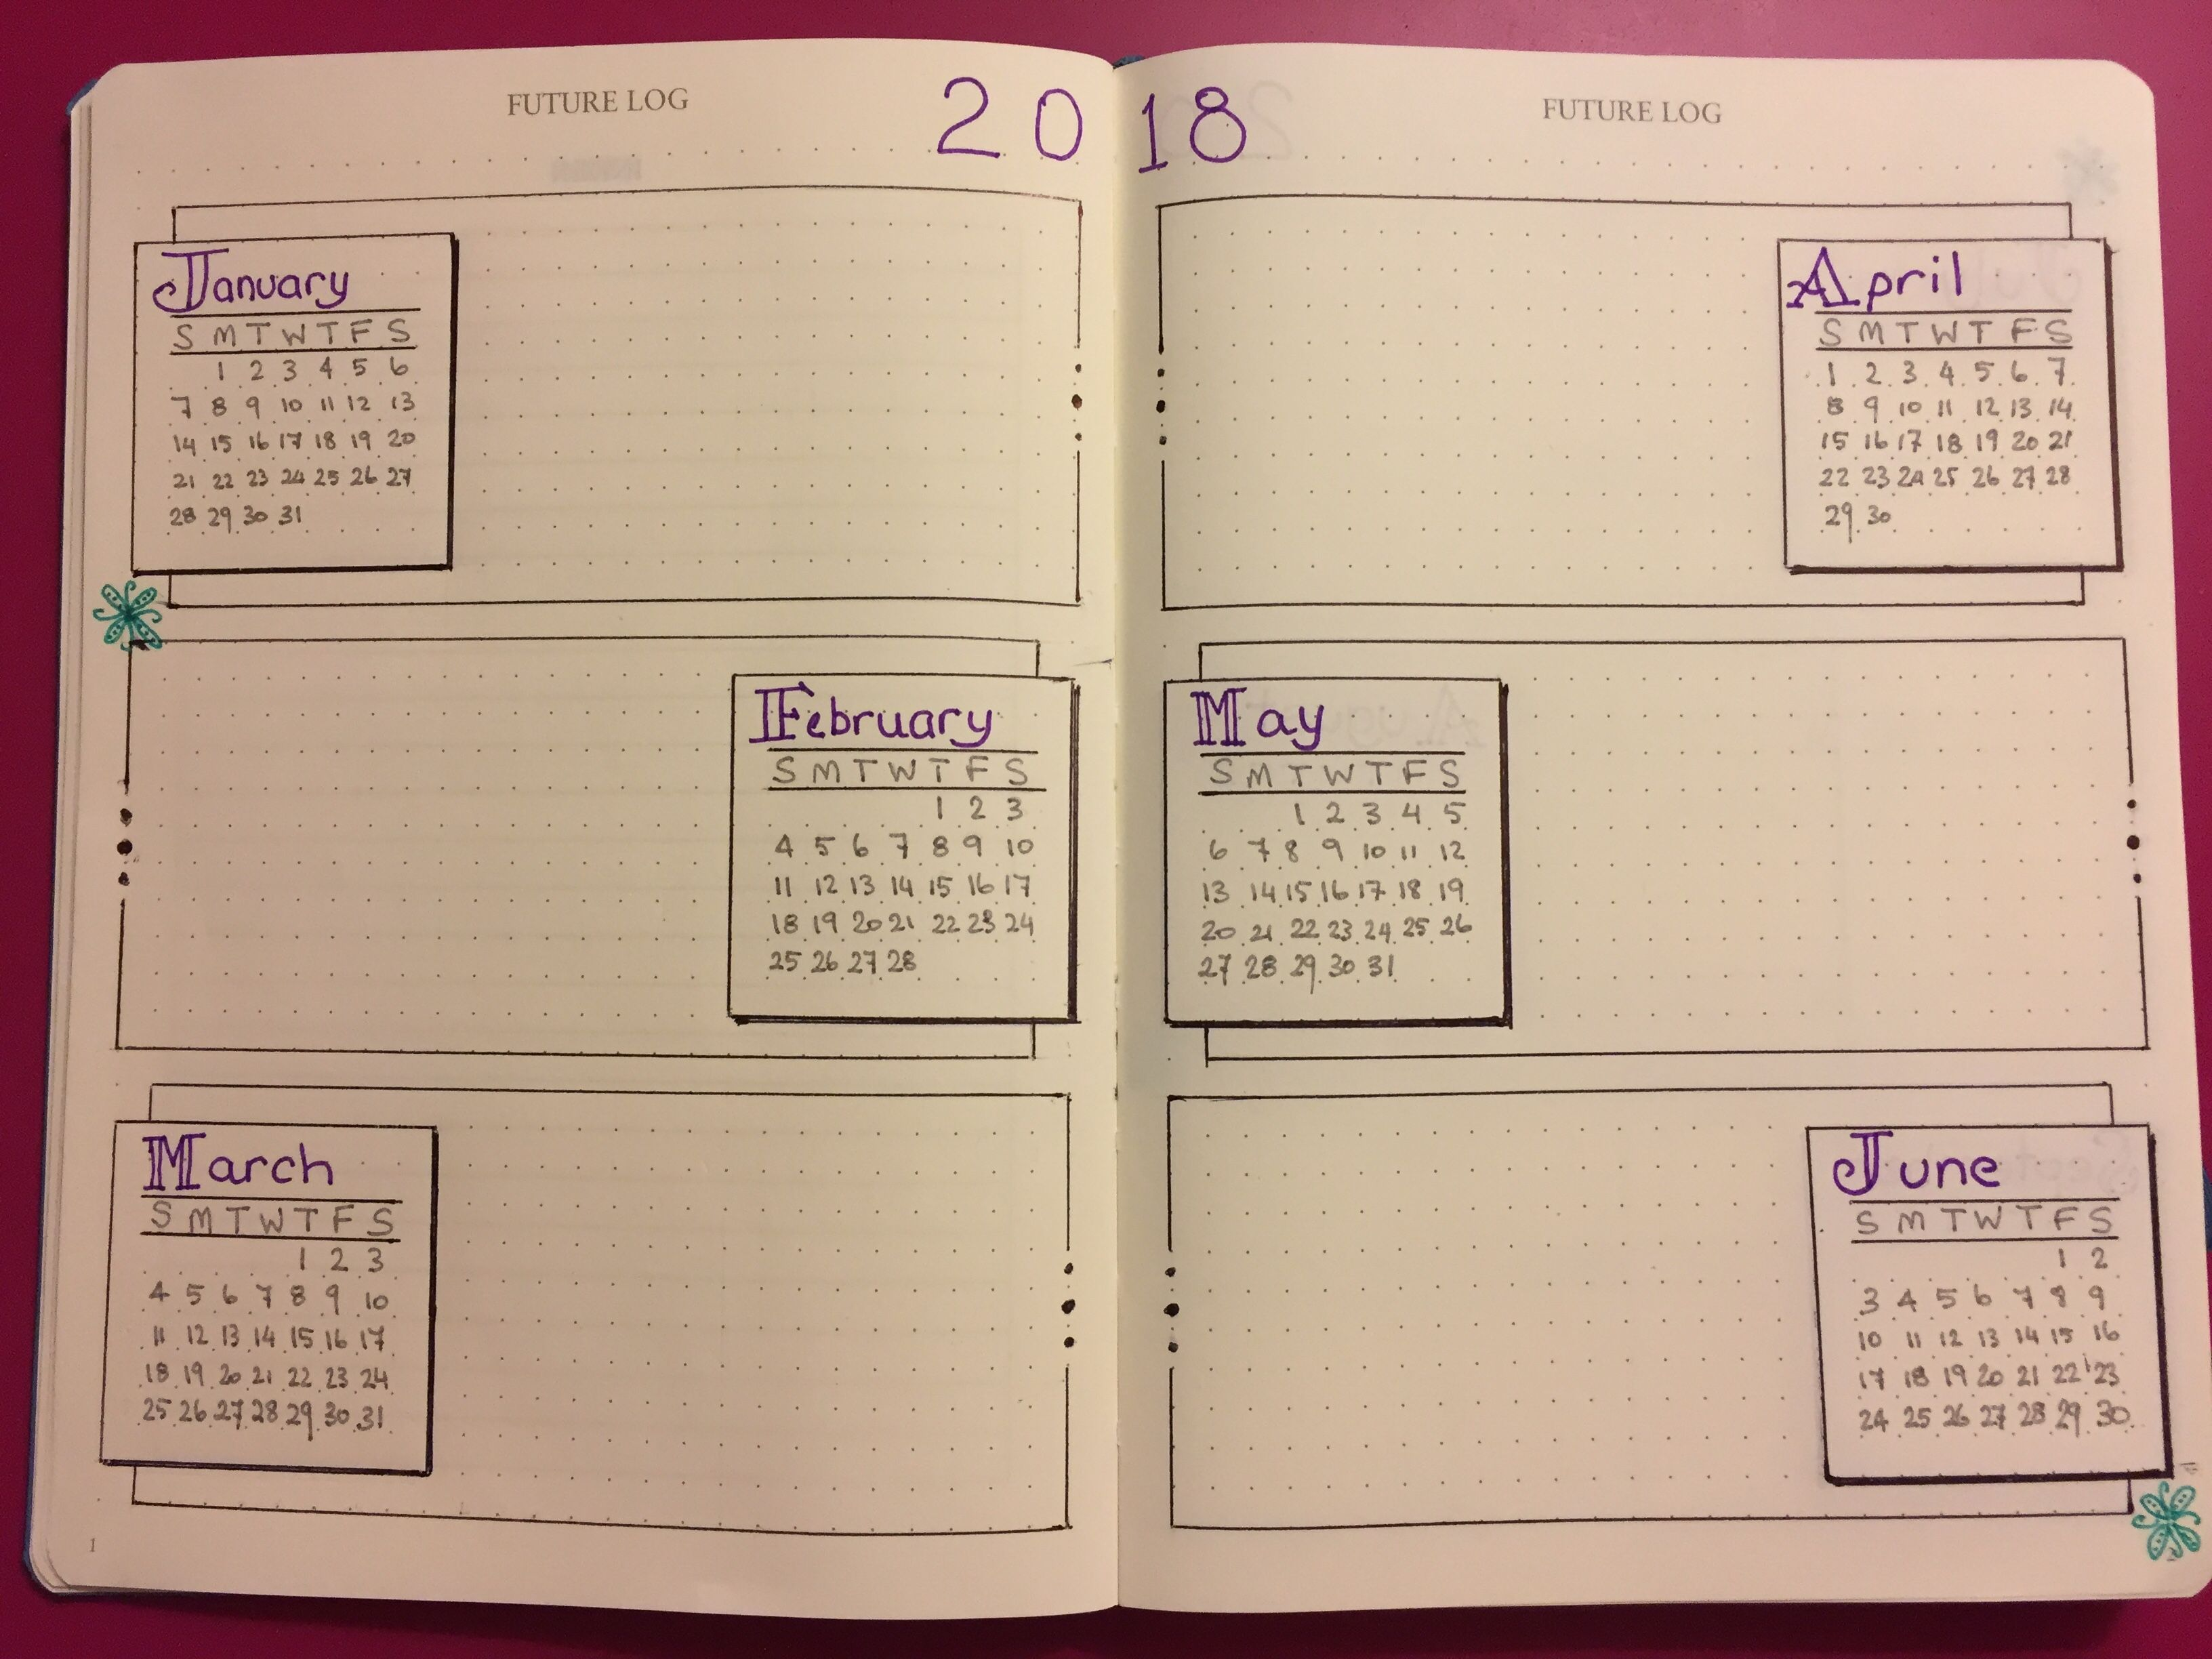 Here S A Future Log Layout Idea 6 Months Across A Double Page